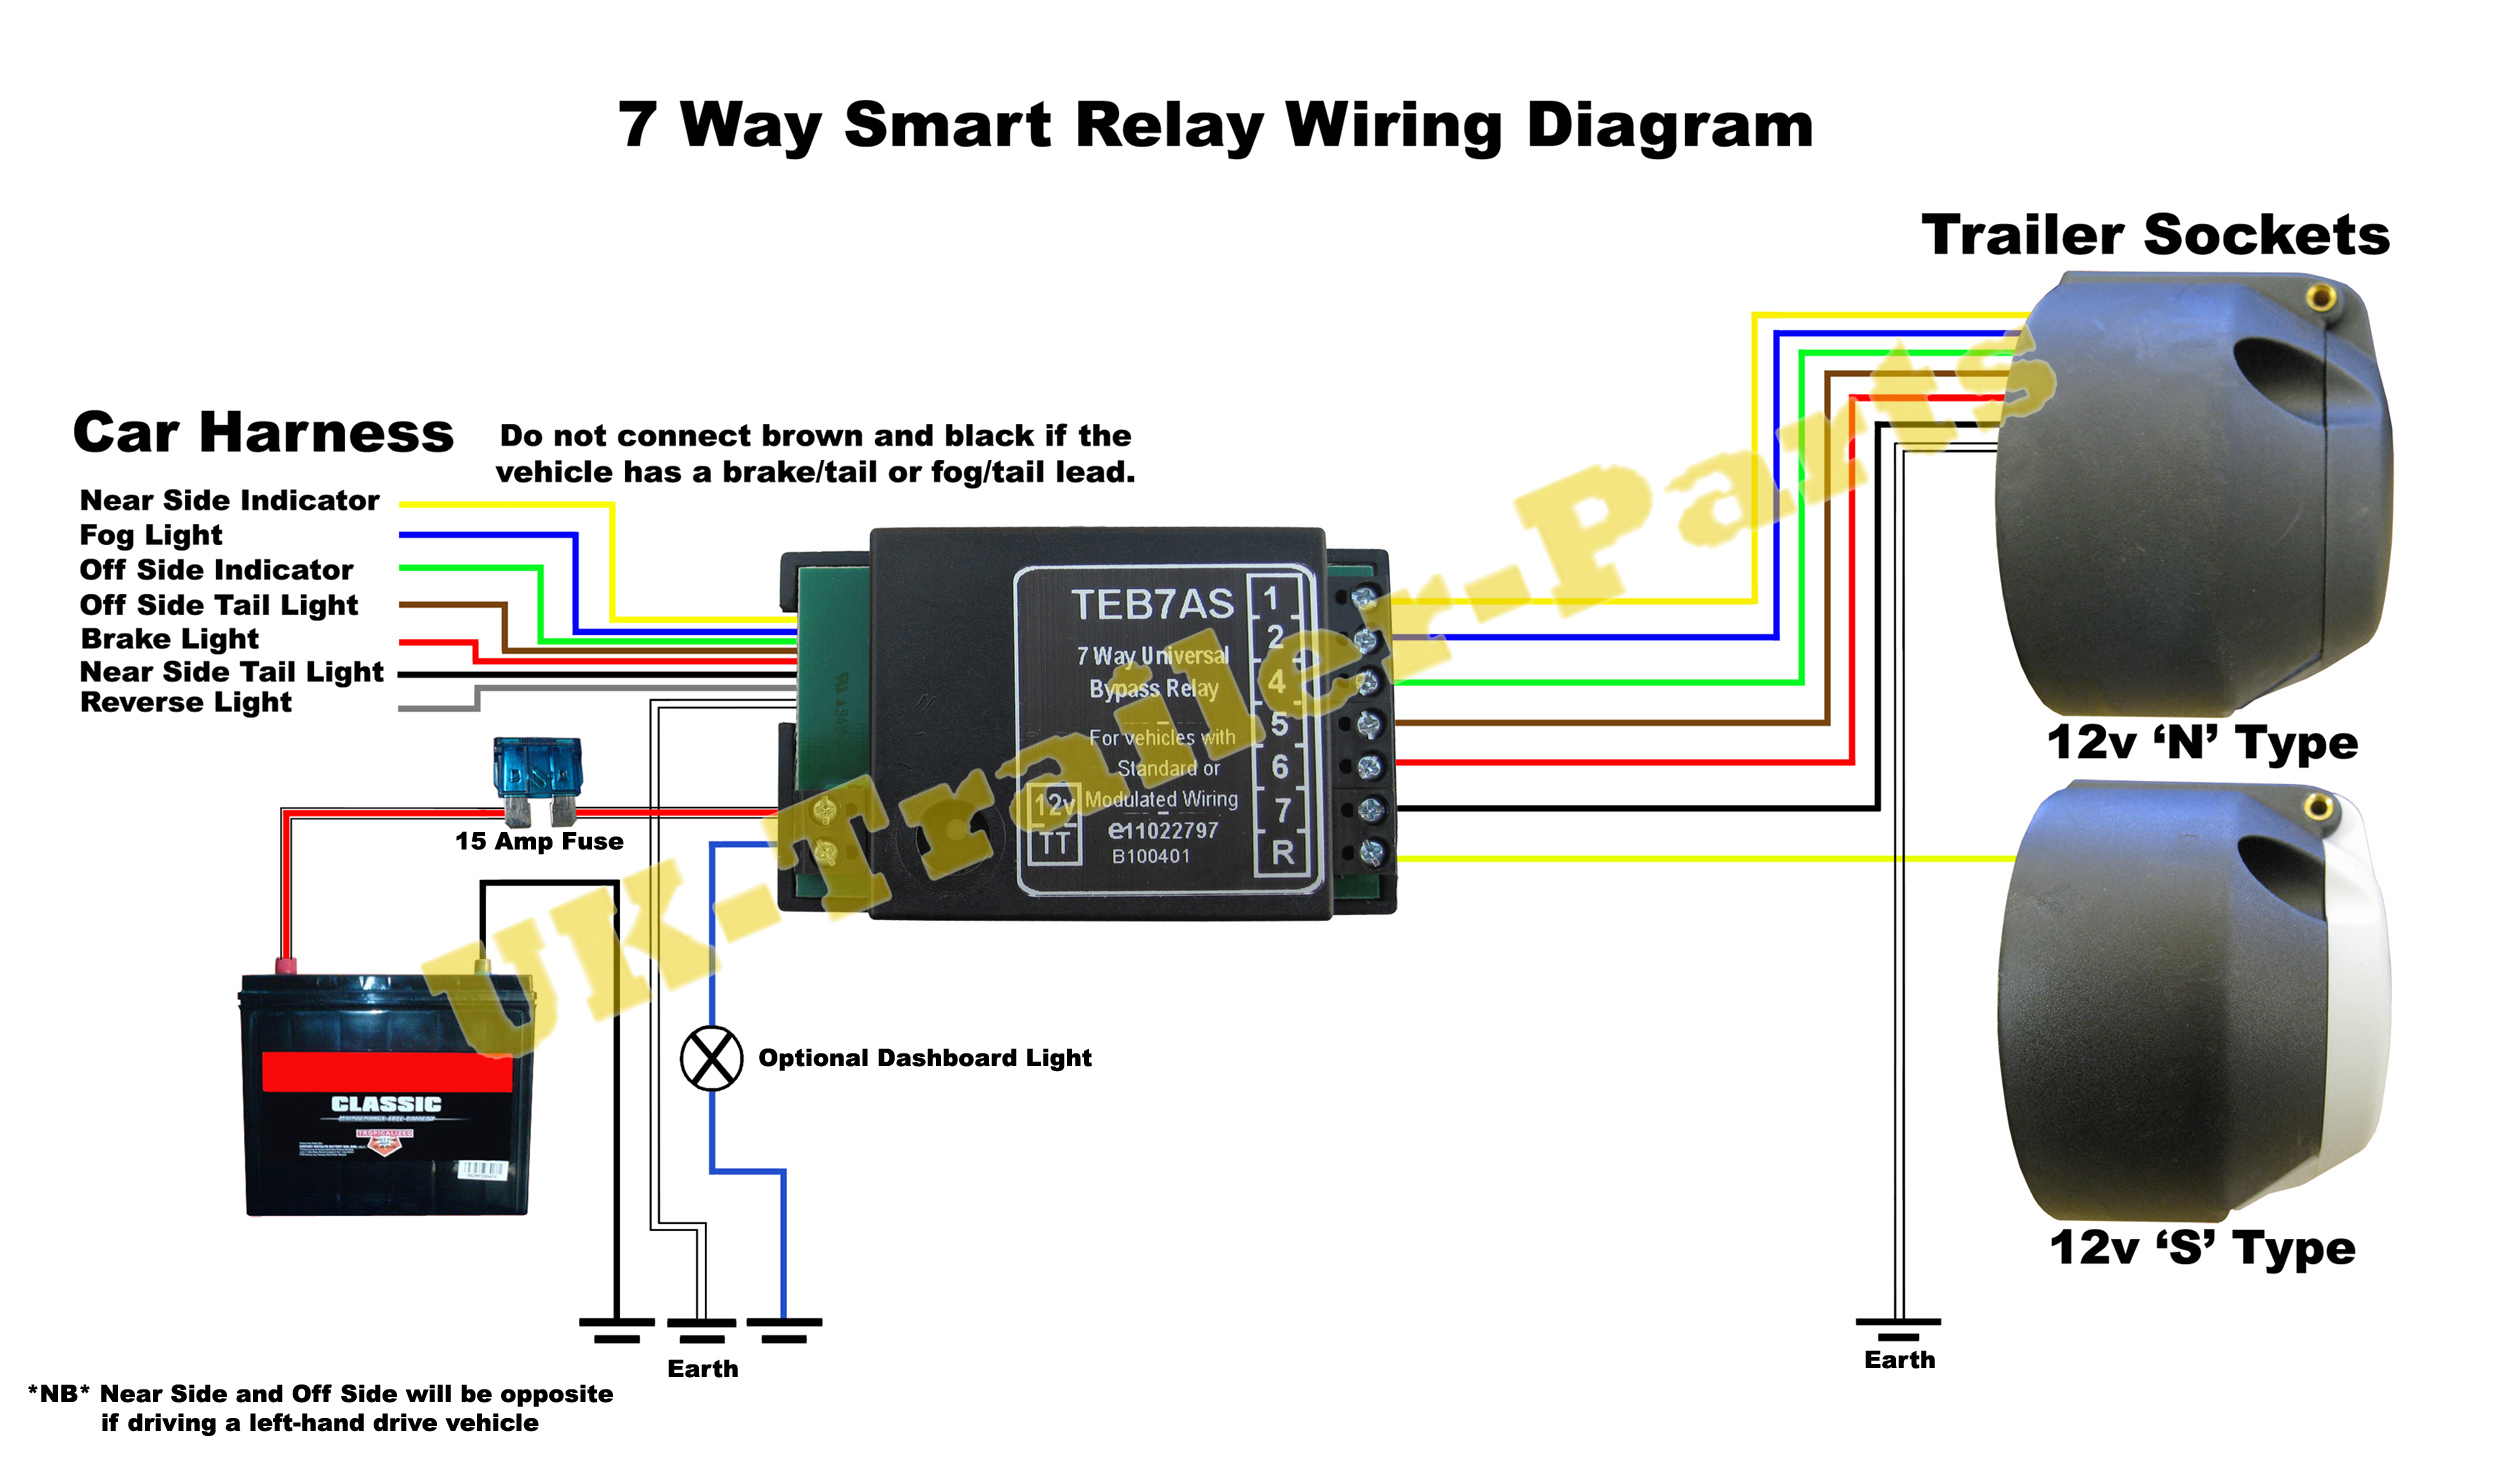 7 way universal bypass relay wiring diagram uk trailer parts Trailer Brake Battery Wiring Diagram 4 Plug Trailer Wiring Diagram